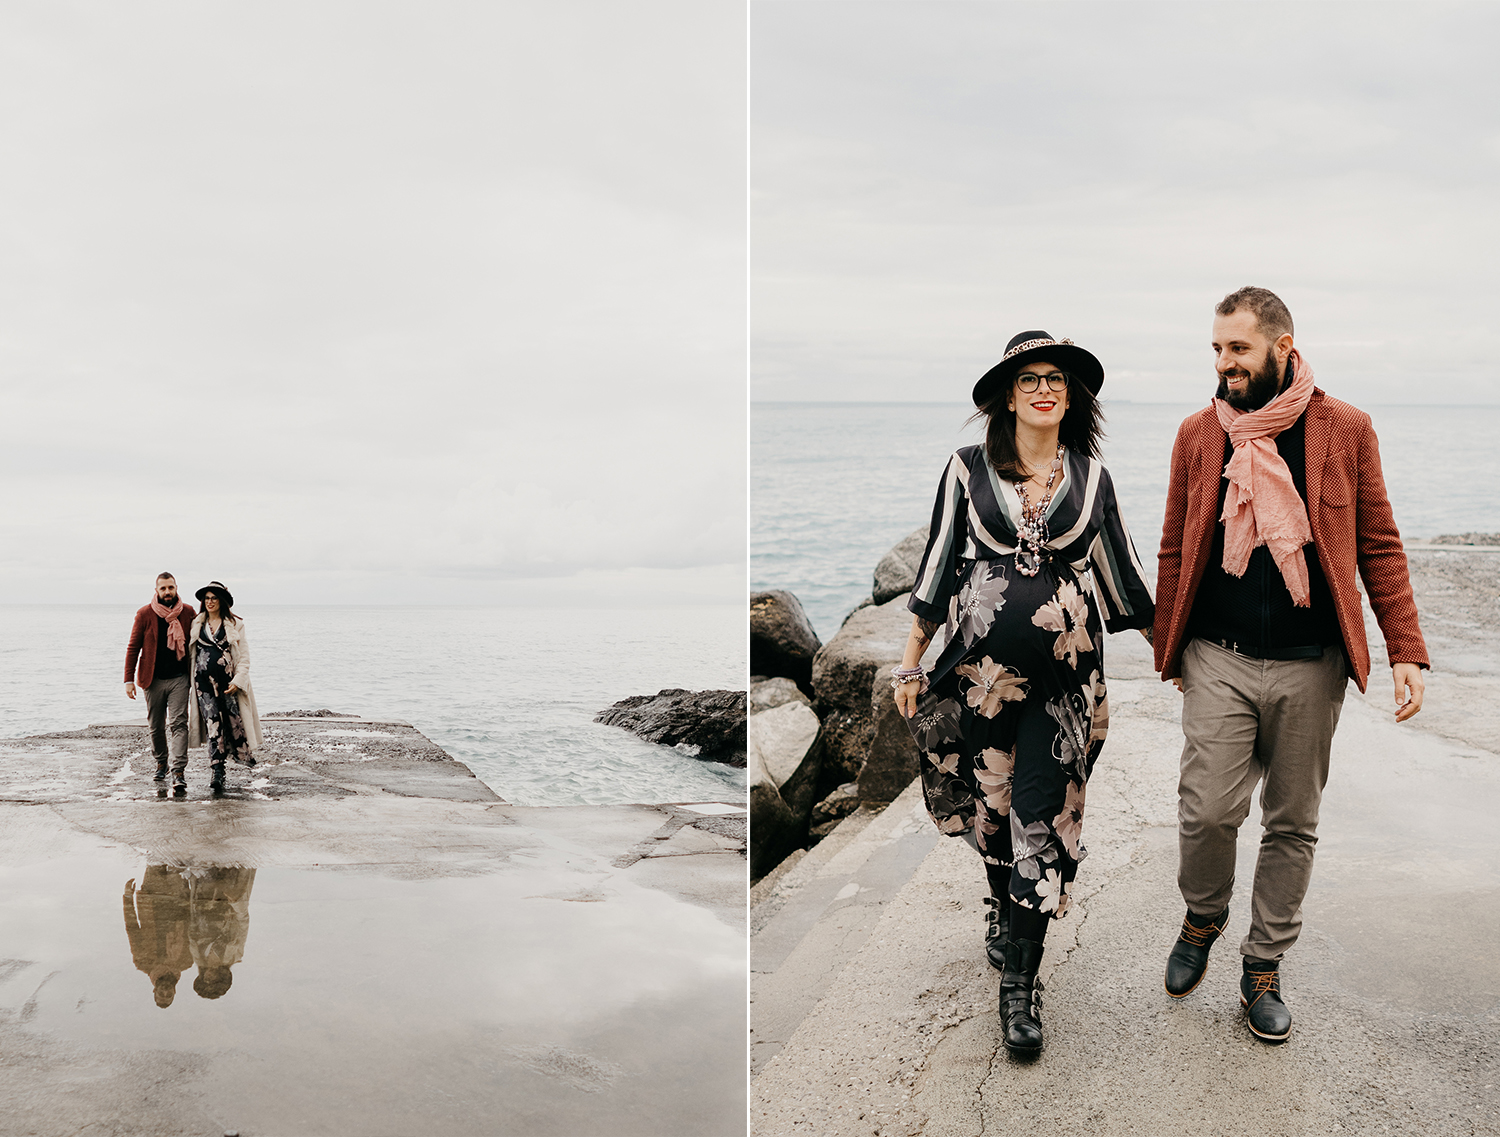 Rebecca Rinaldi maternity photographer in Italy. maternity photo shoot in Camogli, Couple walking  on the peer.